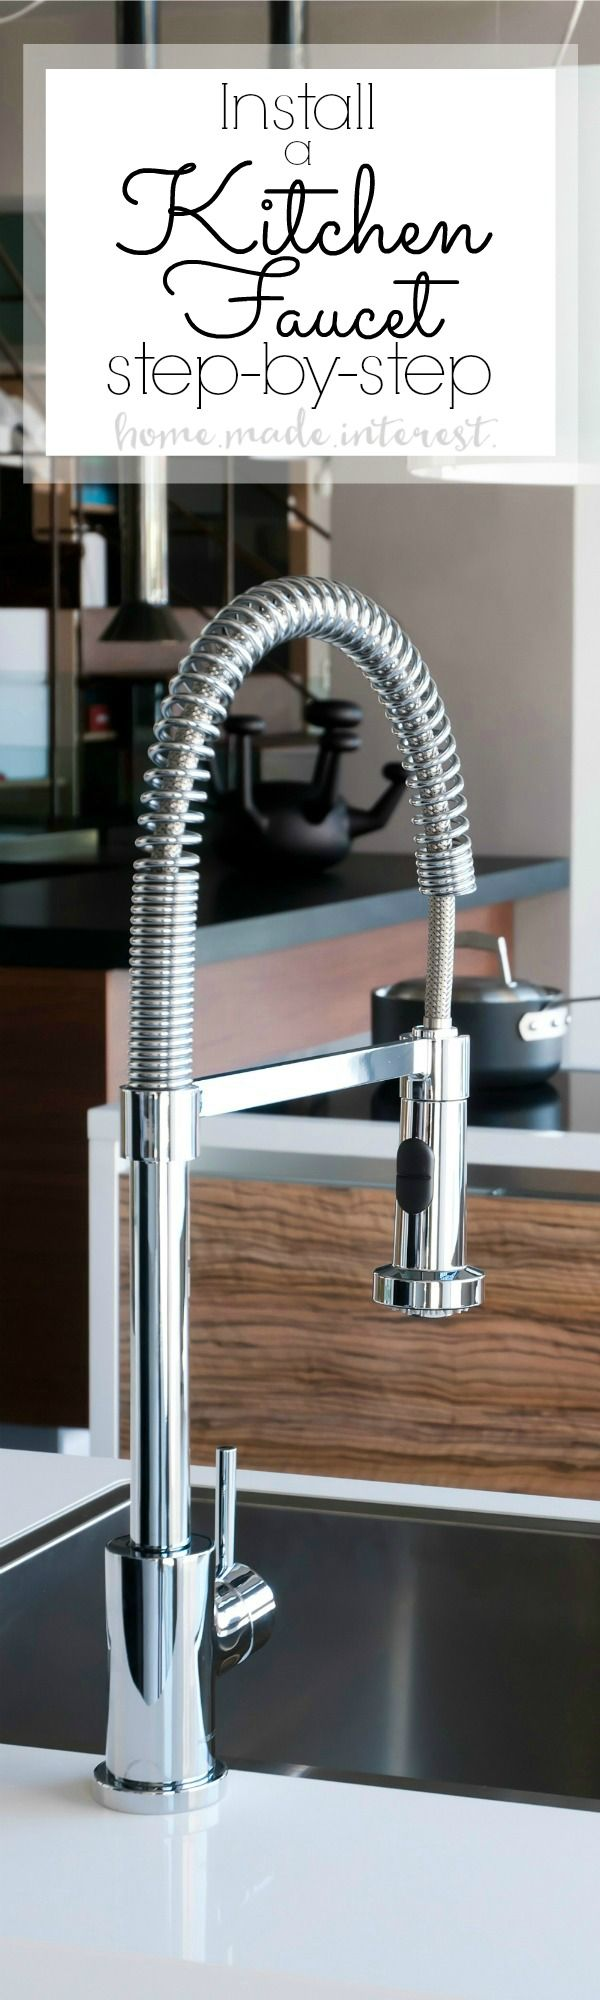 best 25 kitchen faucet repair ideas on pinterest leaky faucet